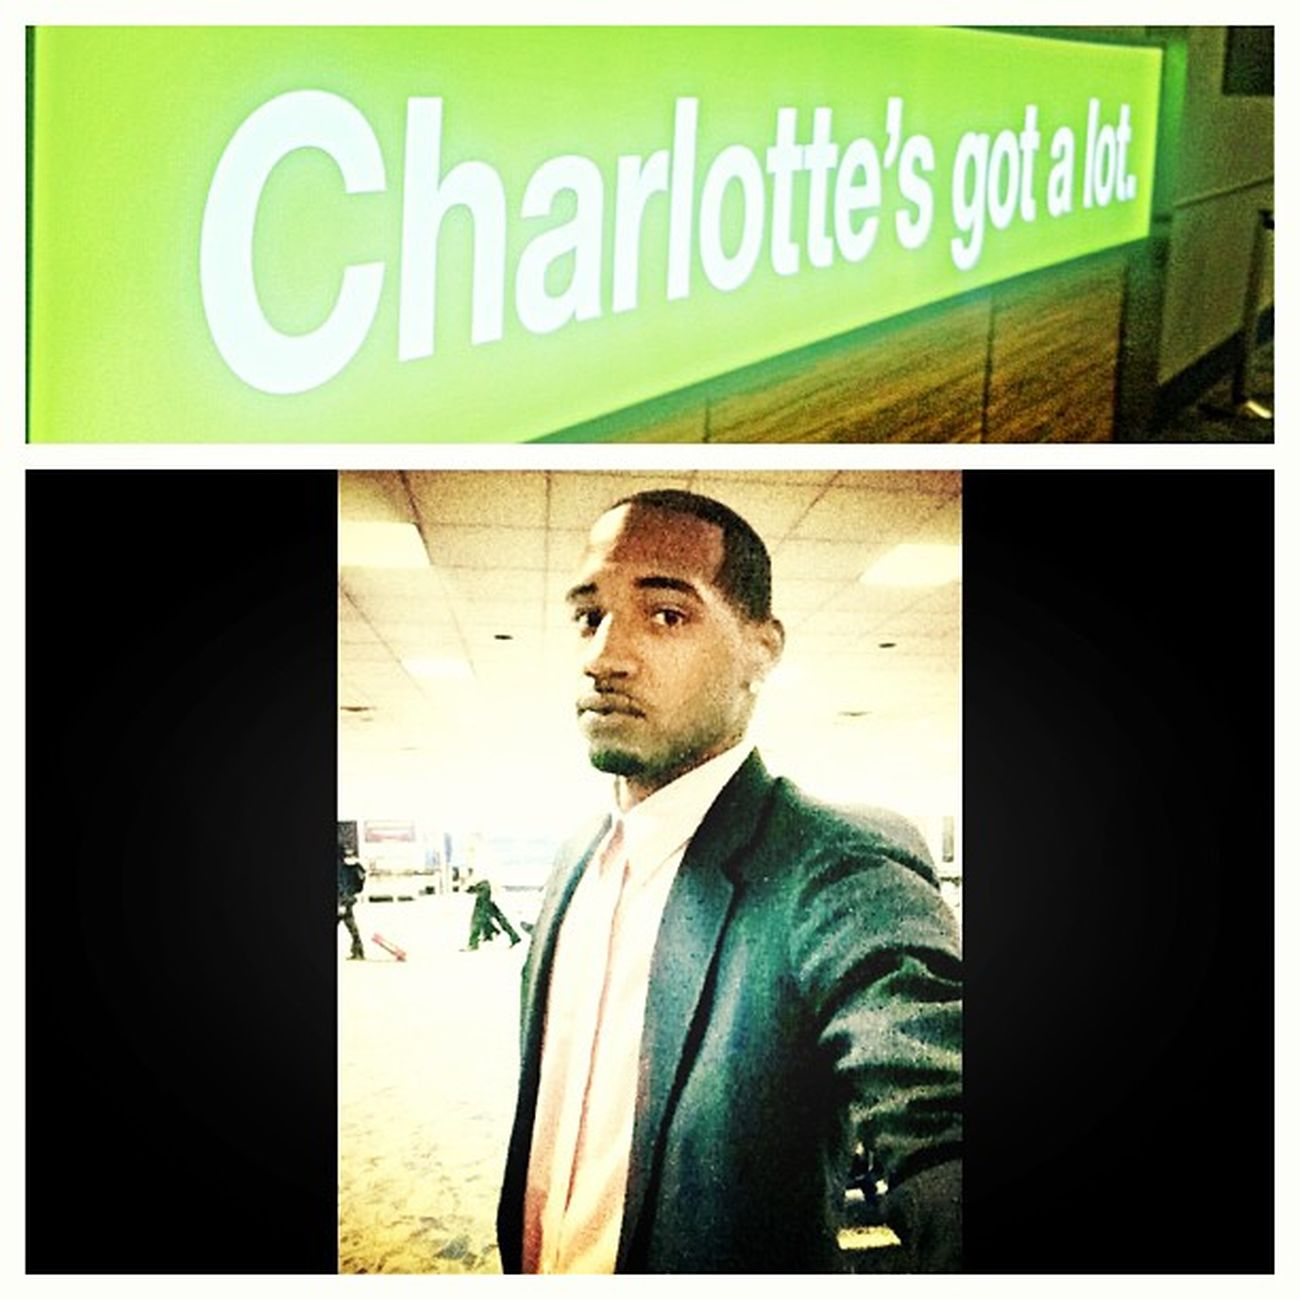 Just landed in Charlotte Northcarolina !!! Newyork here we come! Luxury Lifestyle YR&F™ International www.YrfLifestyle.com Fashion Instafashion Swag Stylish Style Love Inspiration Clothes Want Photoshoot Weheartit Boutique Sale Streetstyle Vintage Styleblogger Fashionblogger Styleblogger Love Yrflifestyle layover airport jetlife